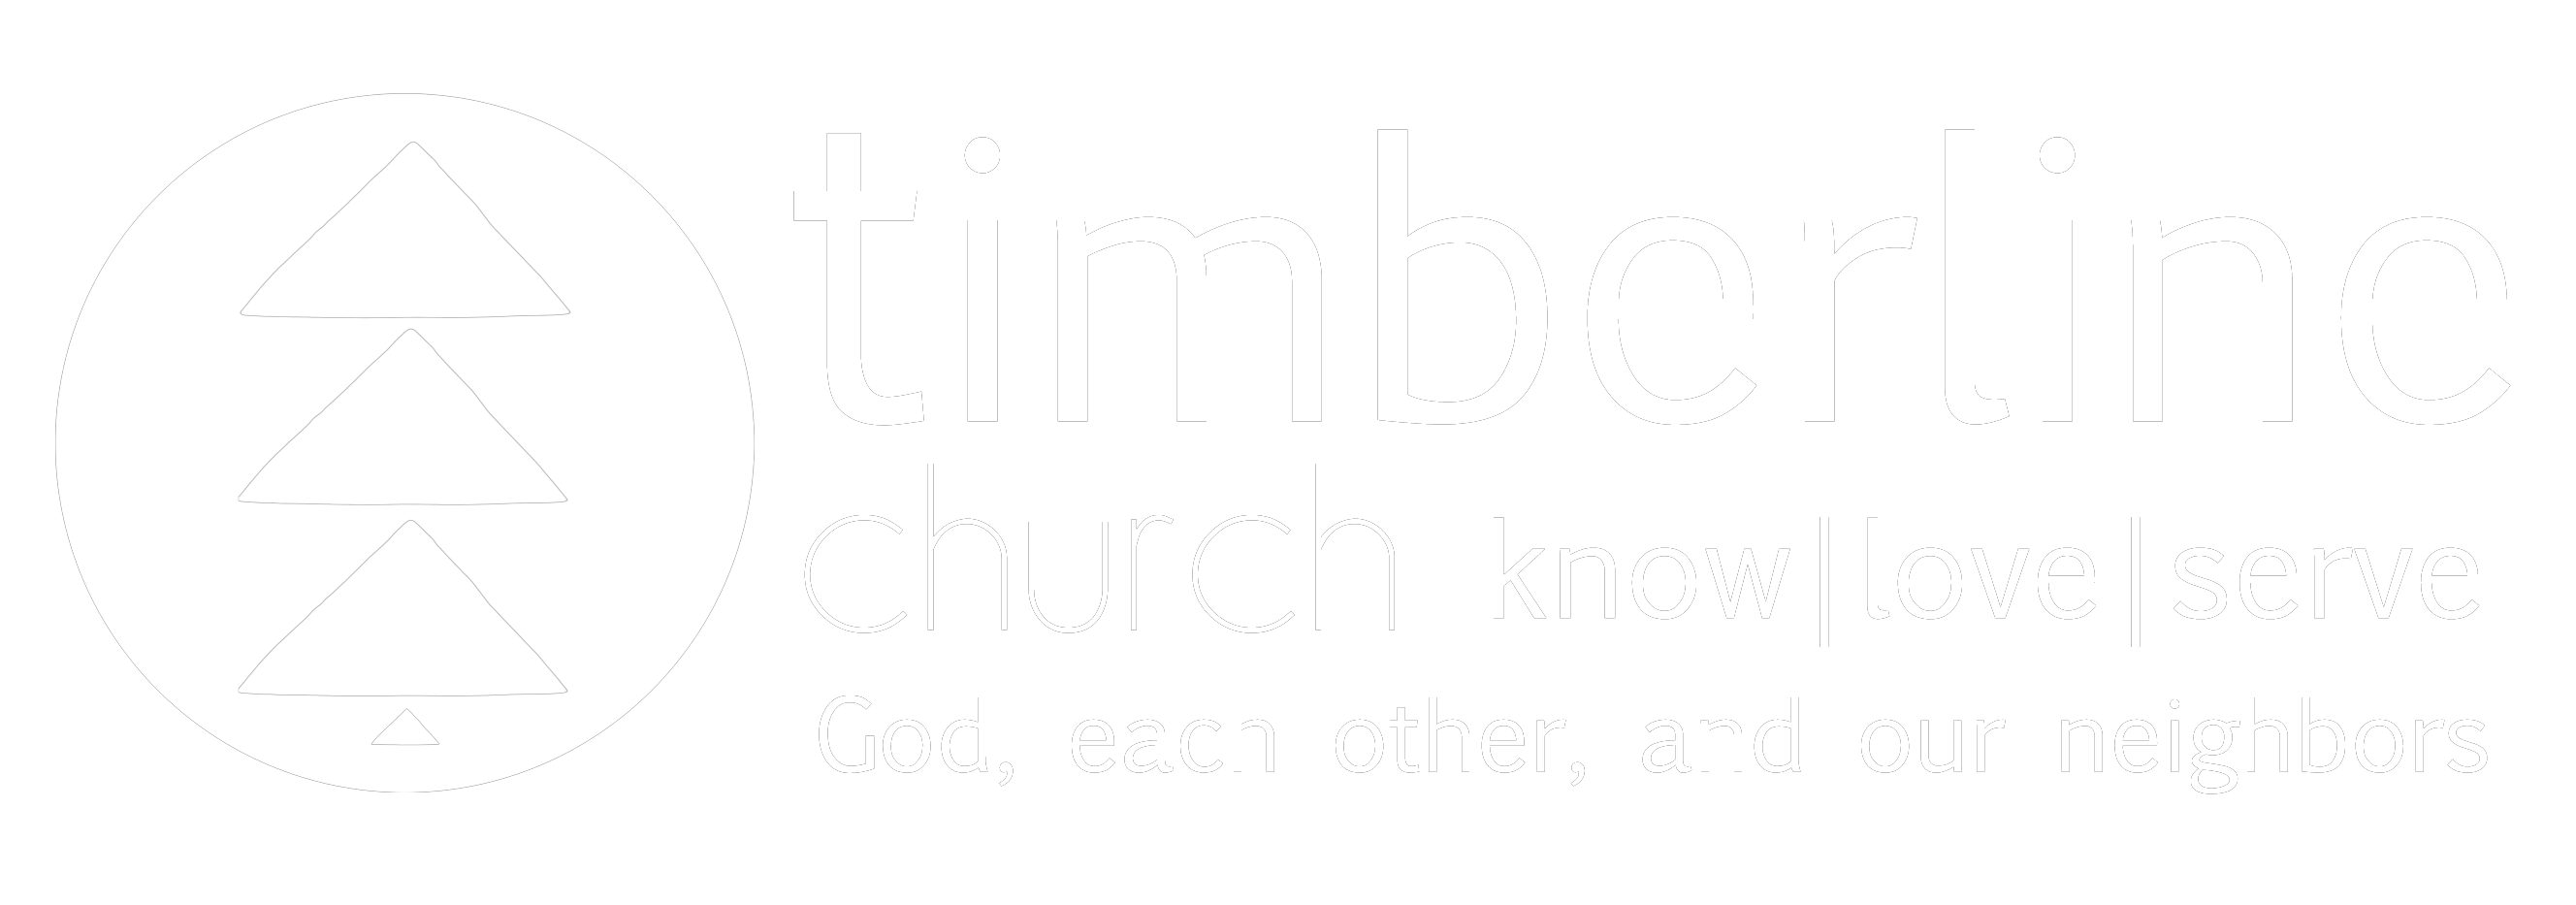 Timberline Church